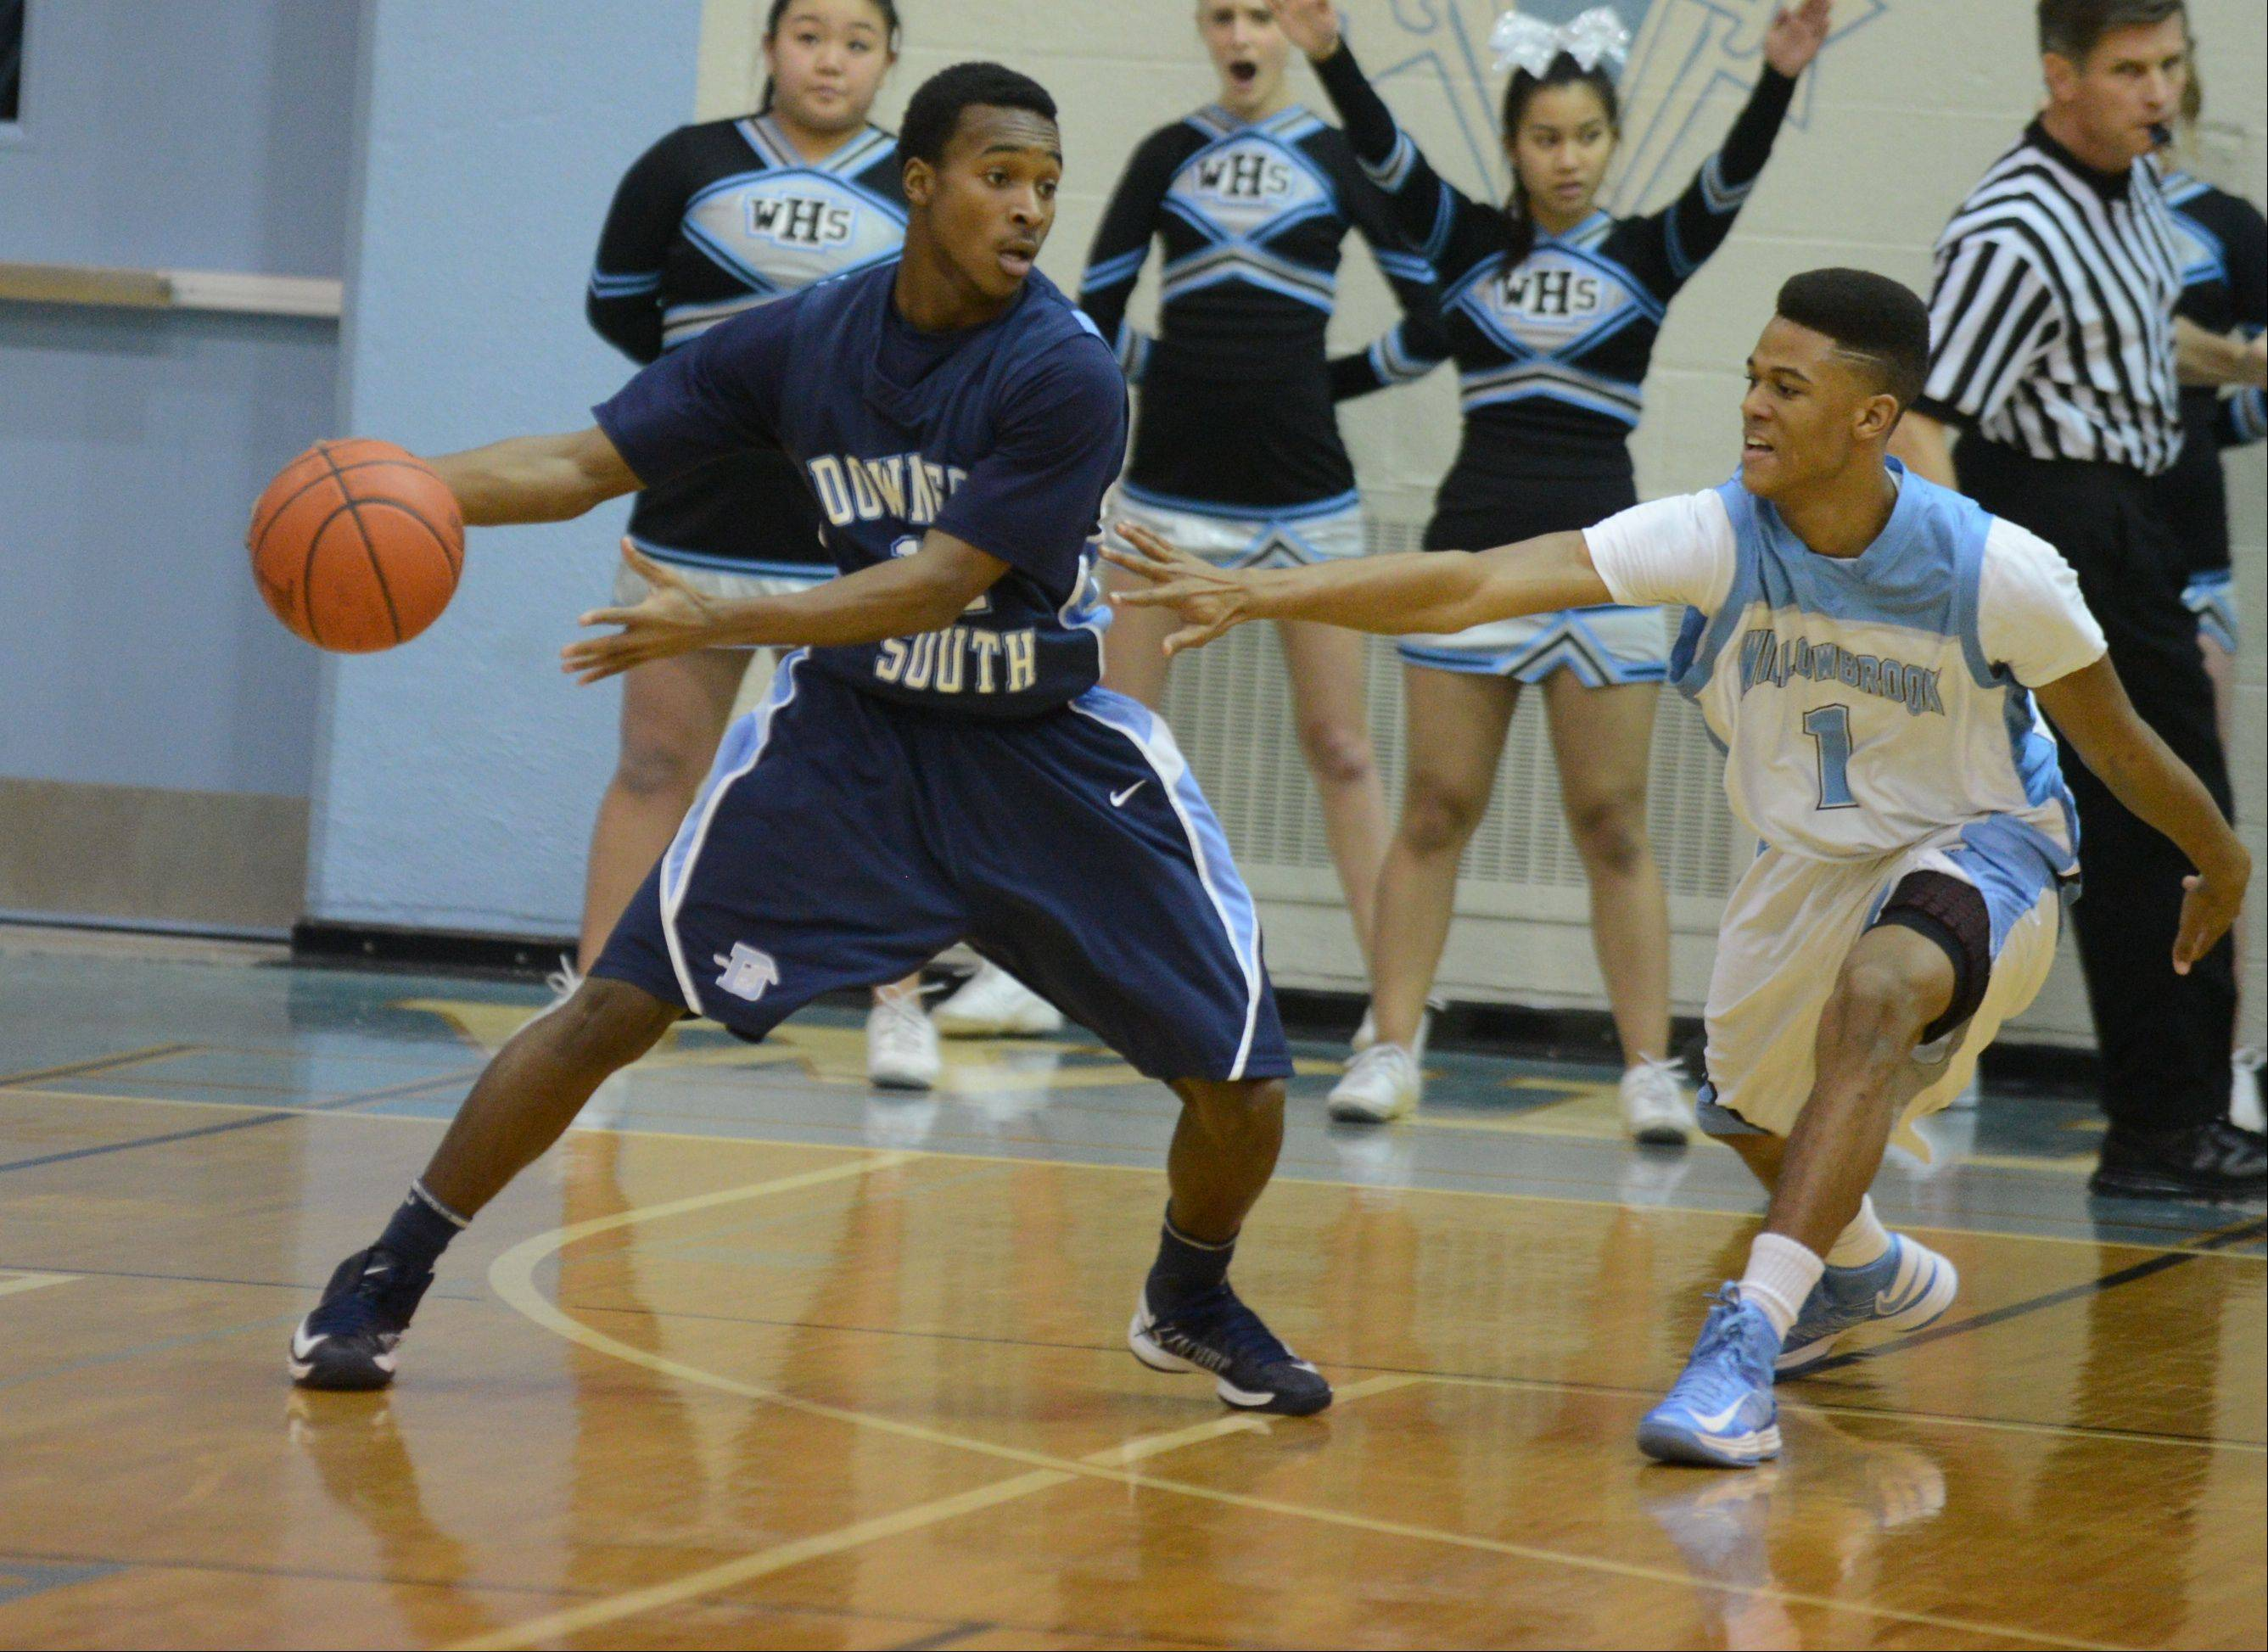 Images from the Willowbrook vs. Downers Grove South boys basketball game on Friday, Jan. 4, 2013.